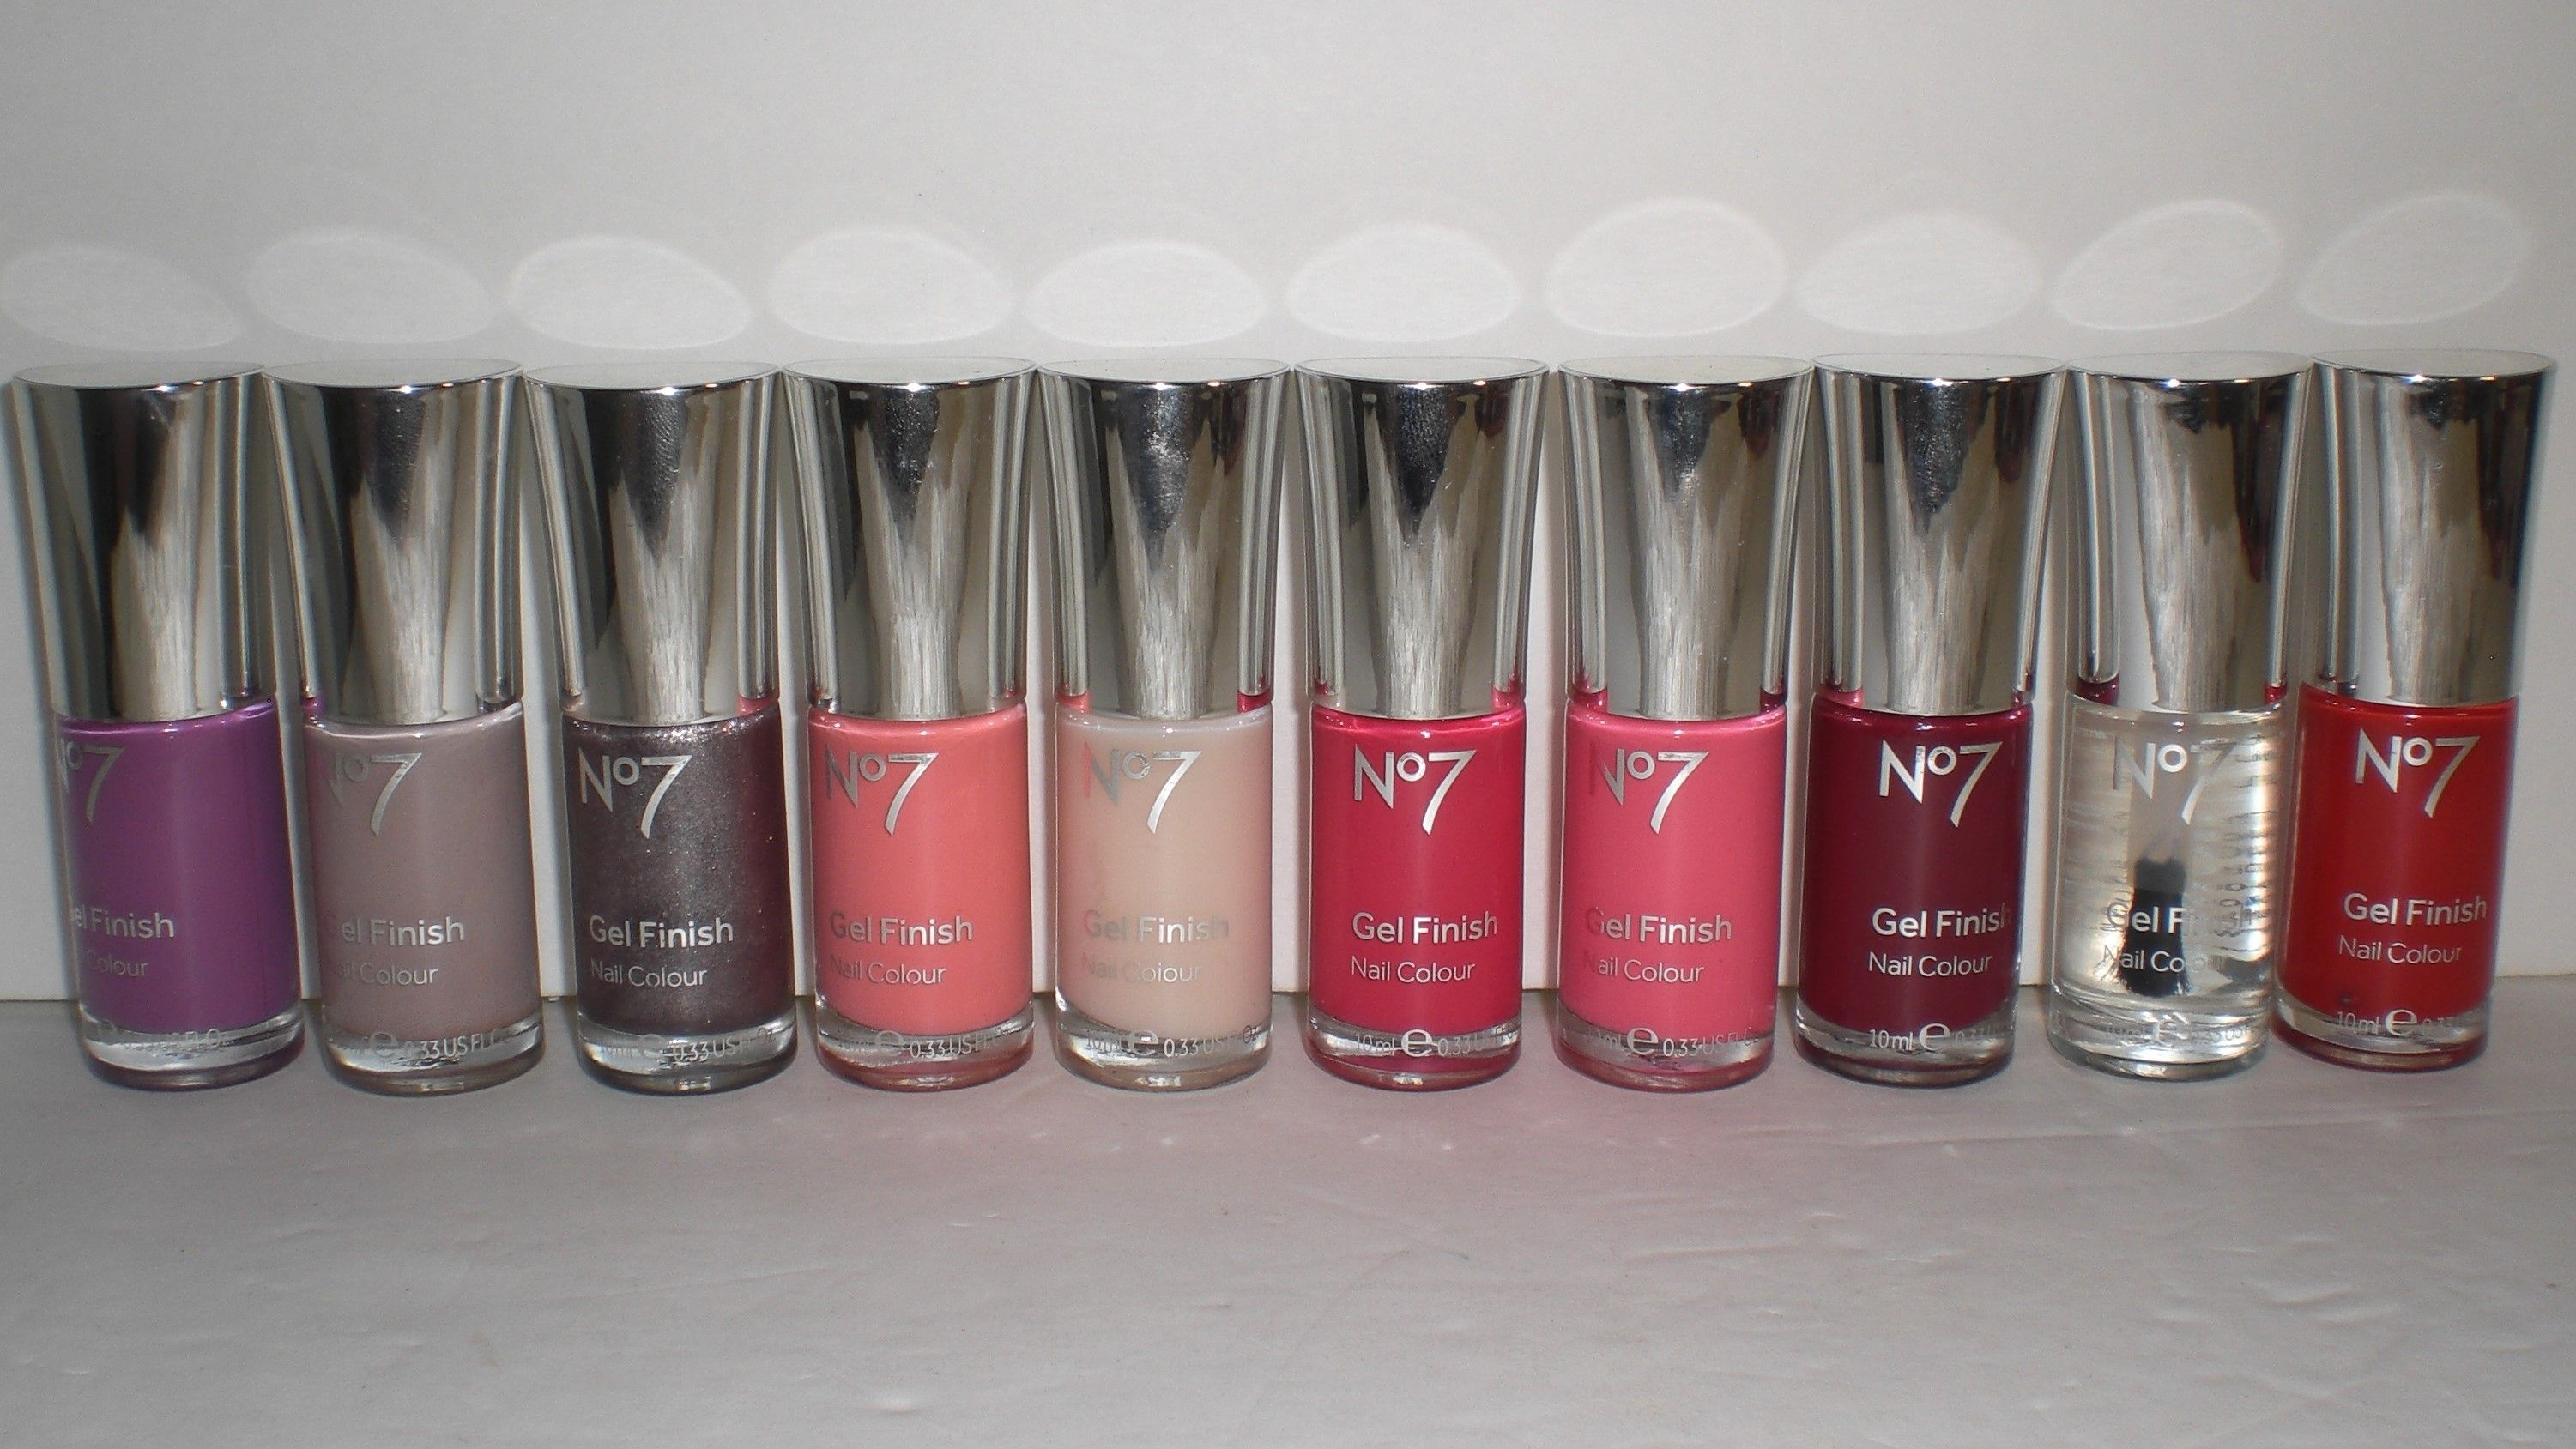 Boots No7 Gel Finish Nail Colour Polish Assortment Lot Of 10 Different Colors Colors Included Purple Bouquet Porcini Mo Selling On Pinterest Boots No7 Gel